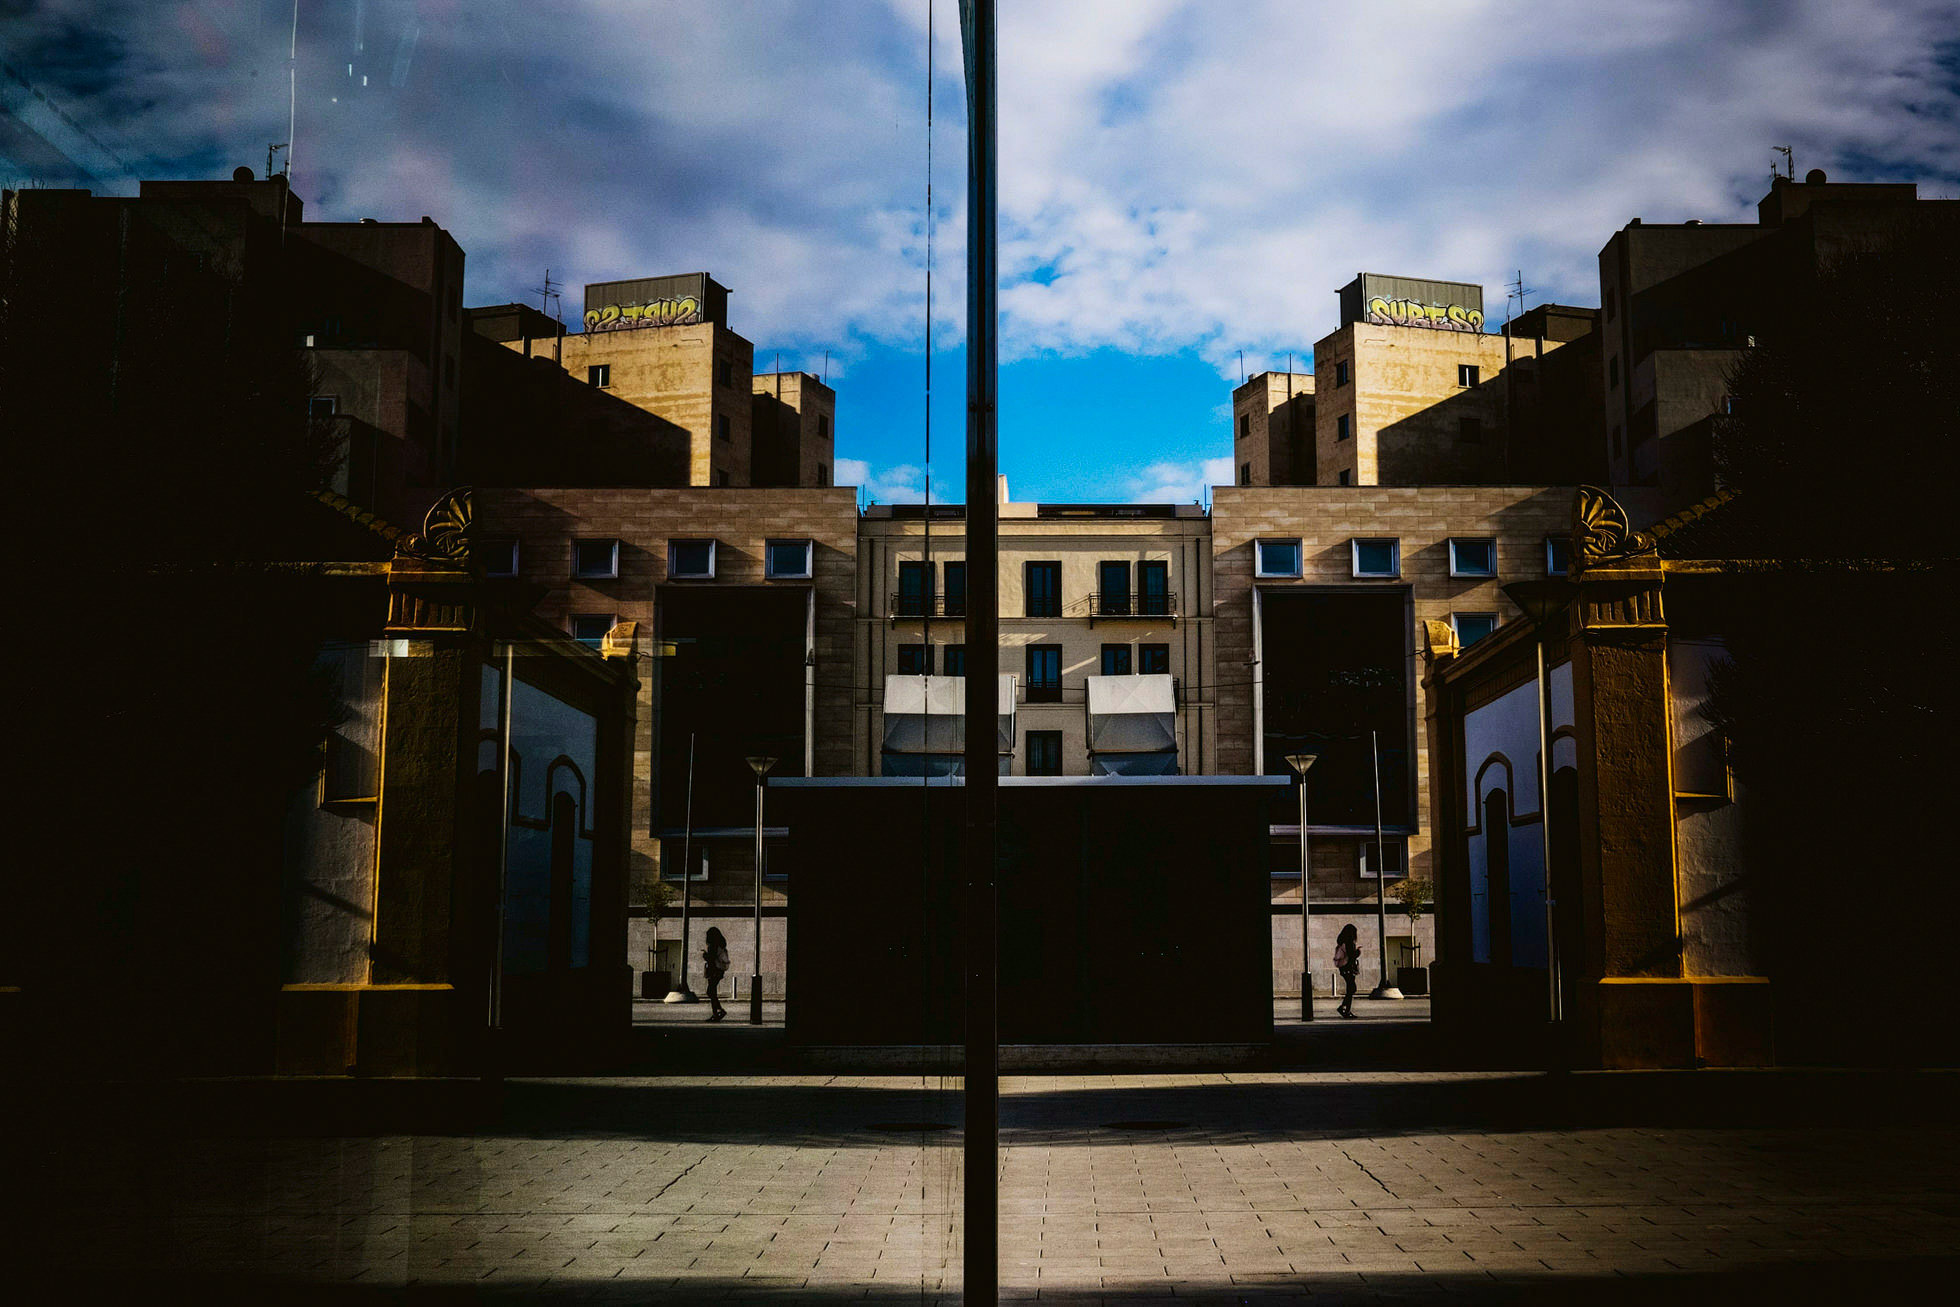 Palma Street Photography with The Fuji X-T1